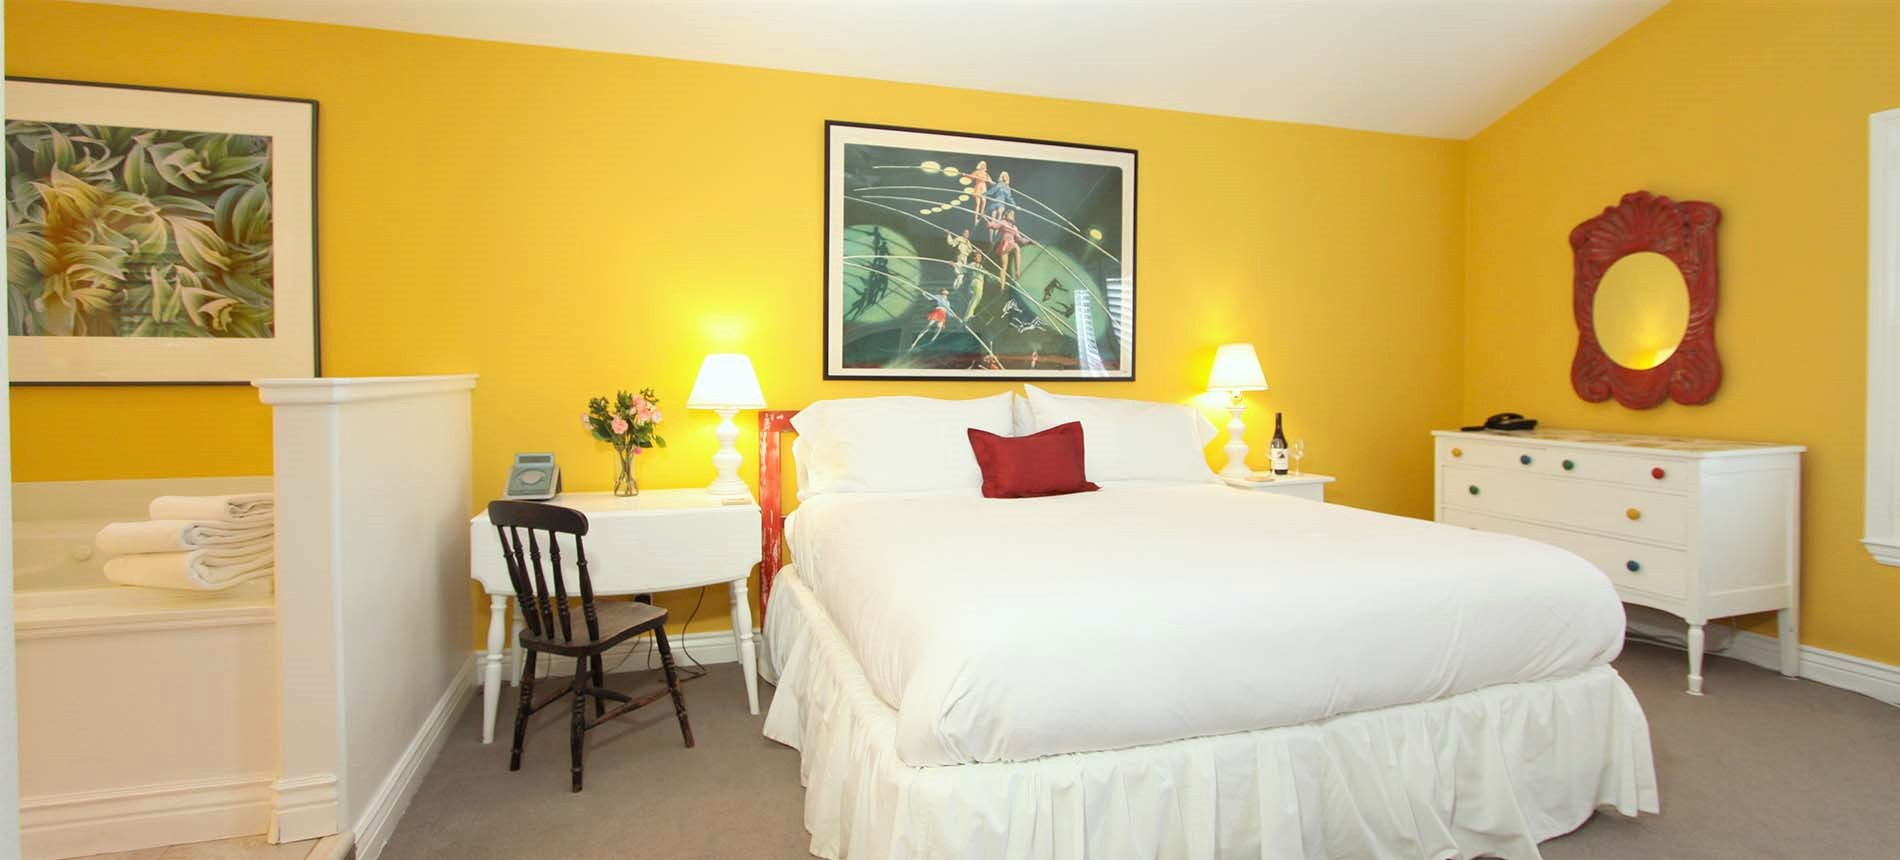 room with bed and chairs - sonoma county hotel lodging